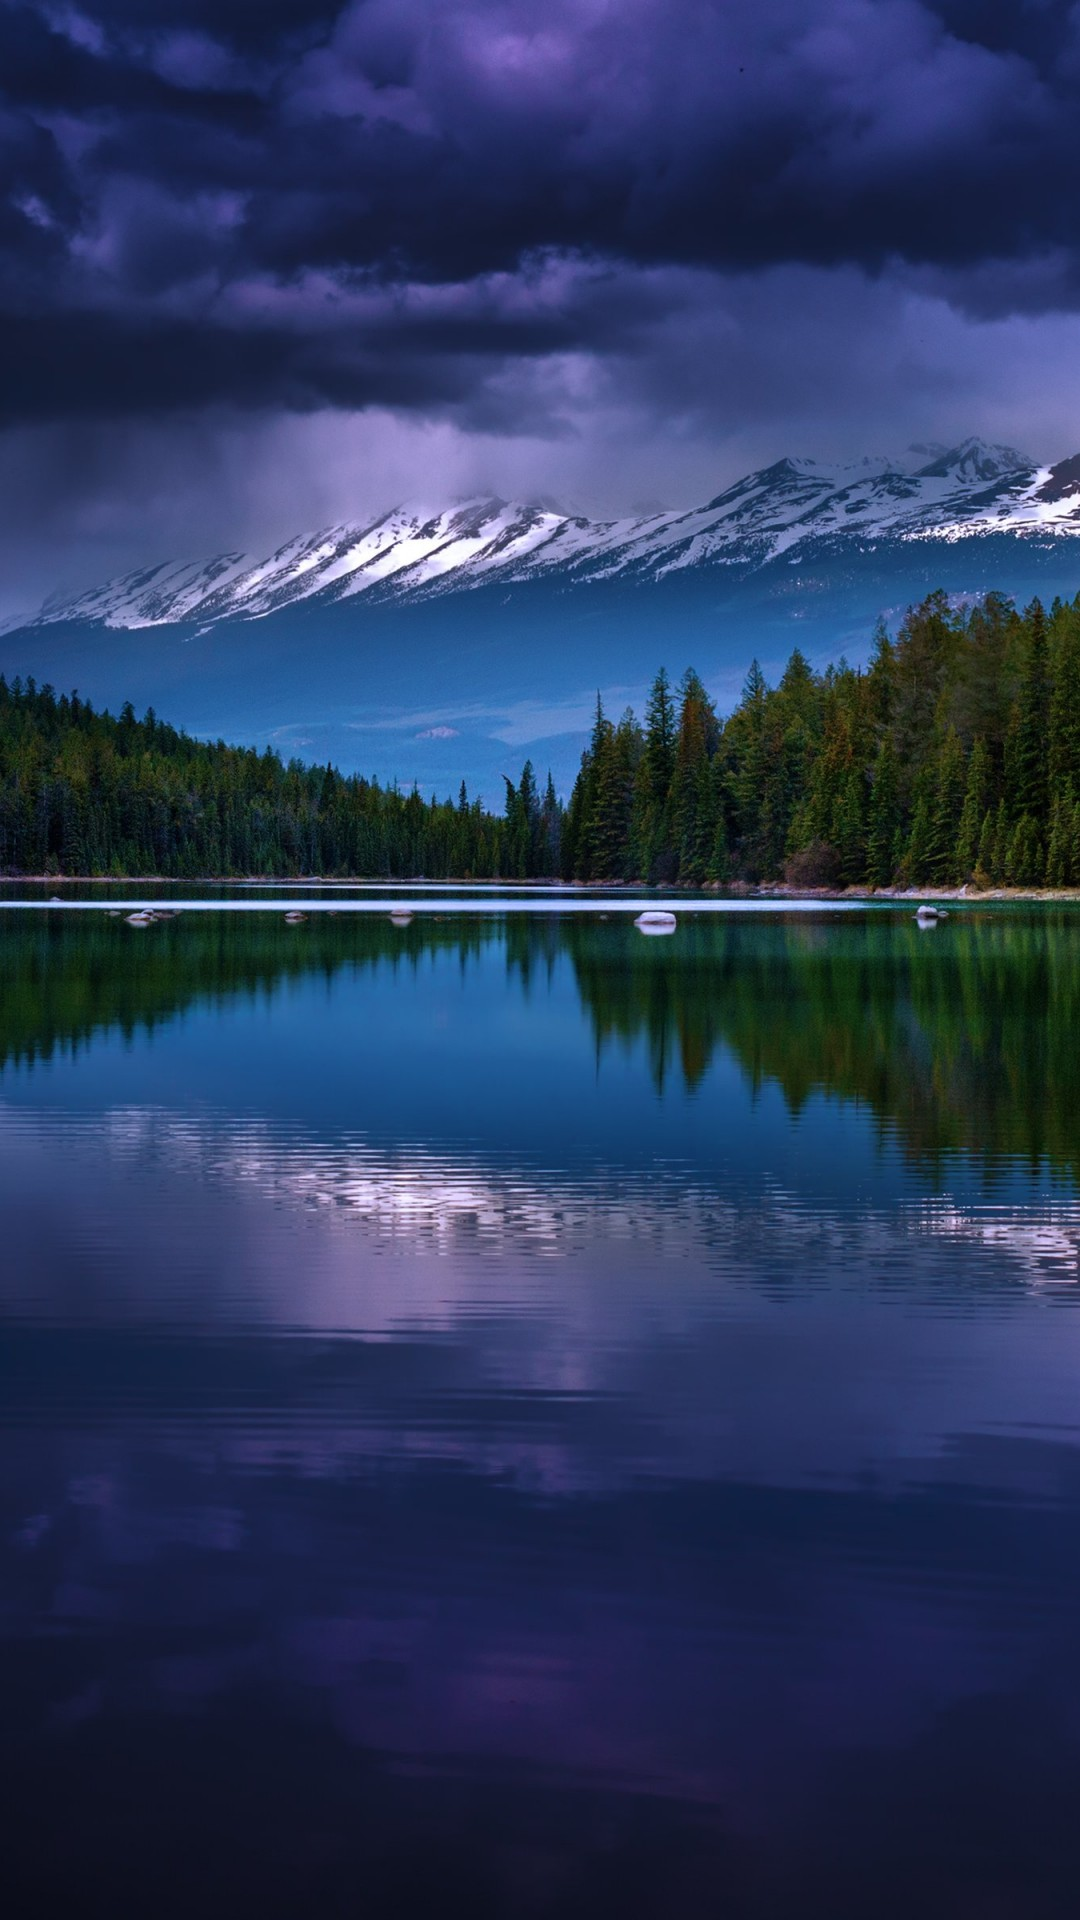 First Lake, Alberta, Canada Wallpaper for SONY Xperia Z1